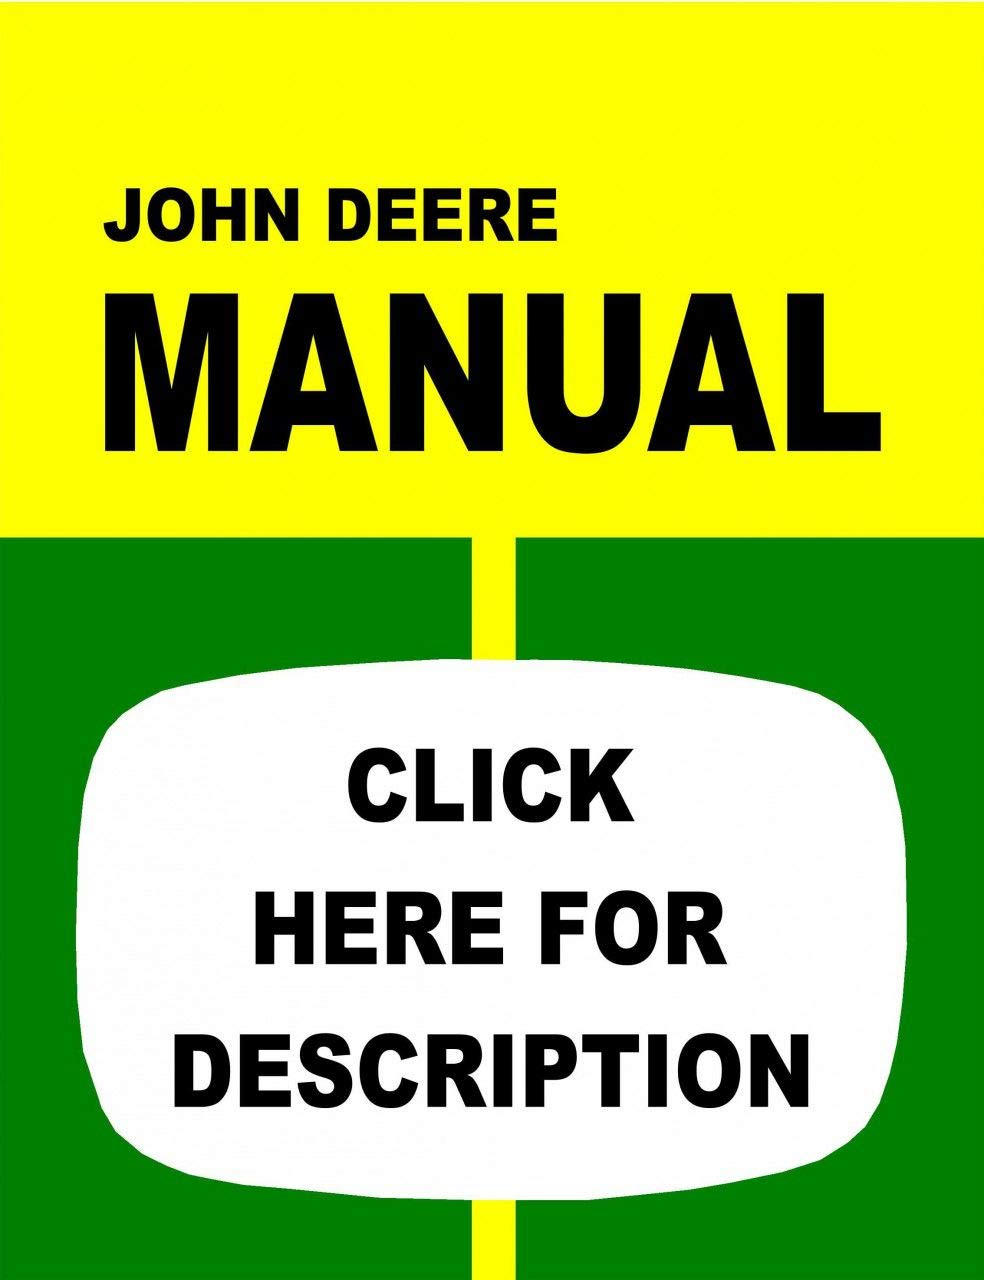 Amazon.com: John Deere 1520 Tractor Service Manual (IT Shop ... on john deere 1530 lights, john deere 1530 parts, john deere 1530 steering, new holland 1530 wiring diagram,